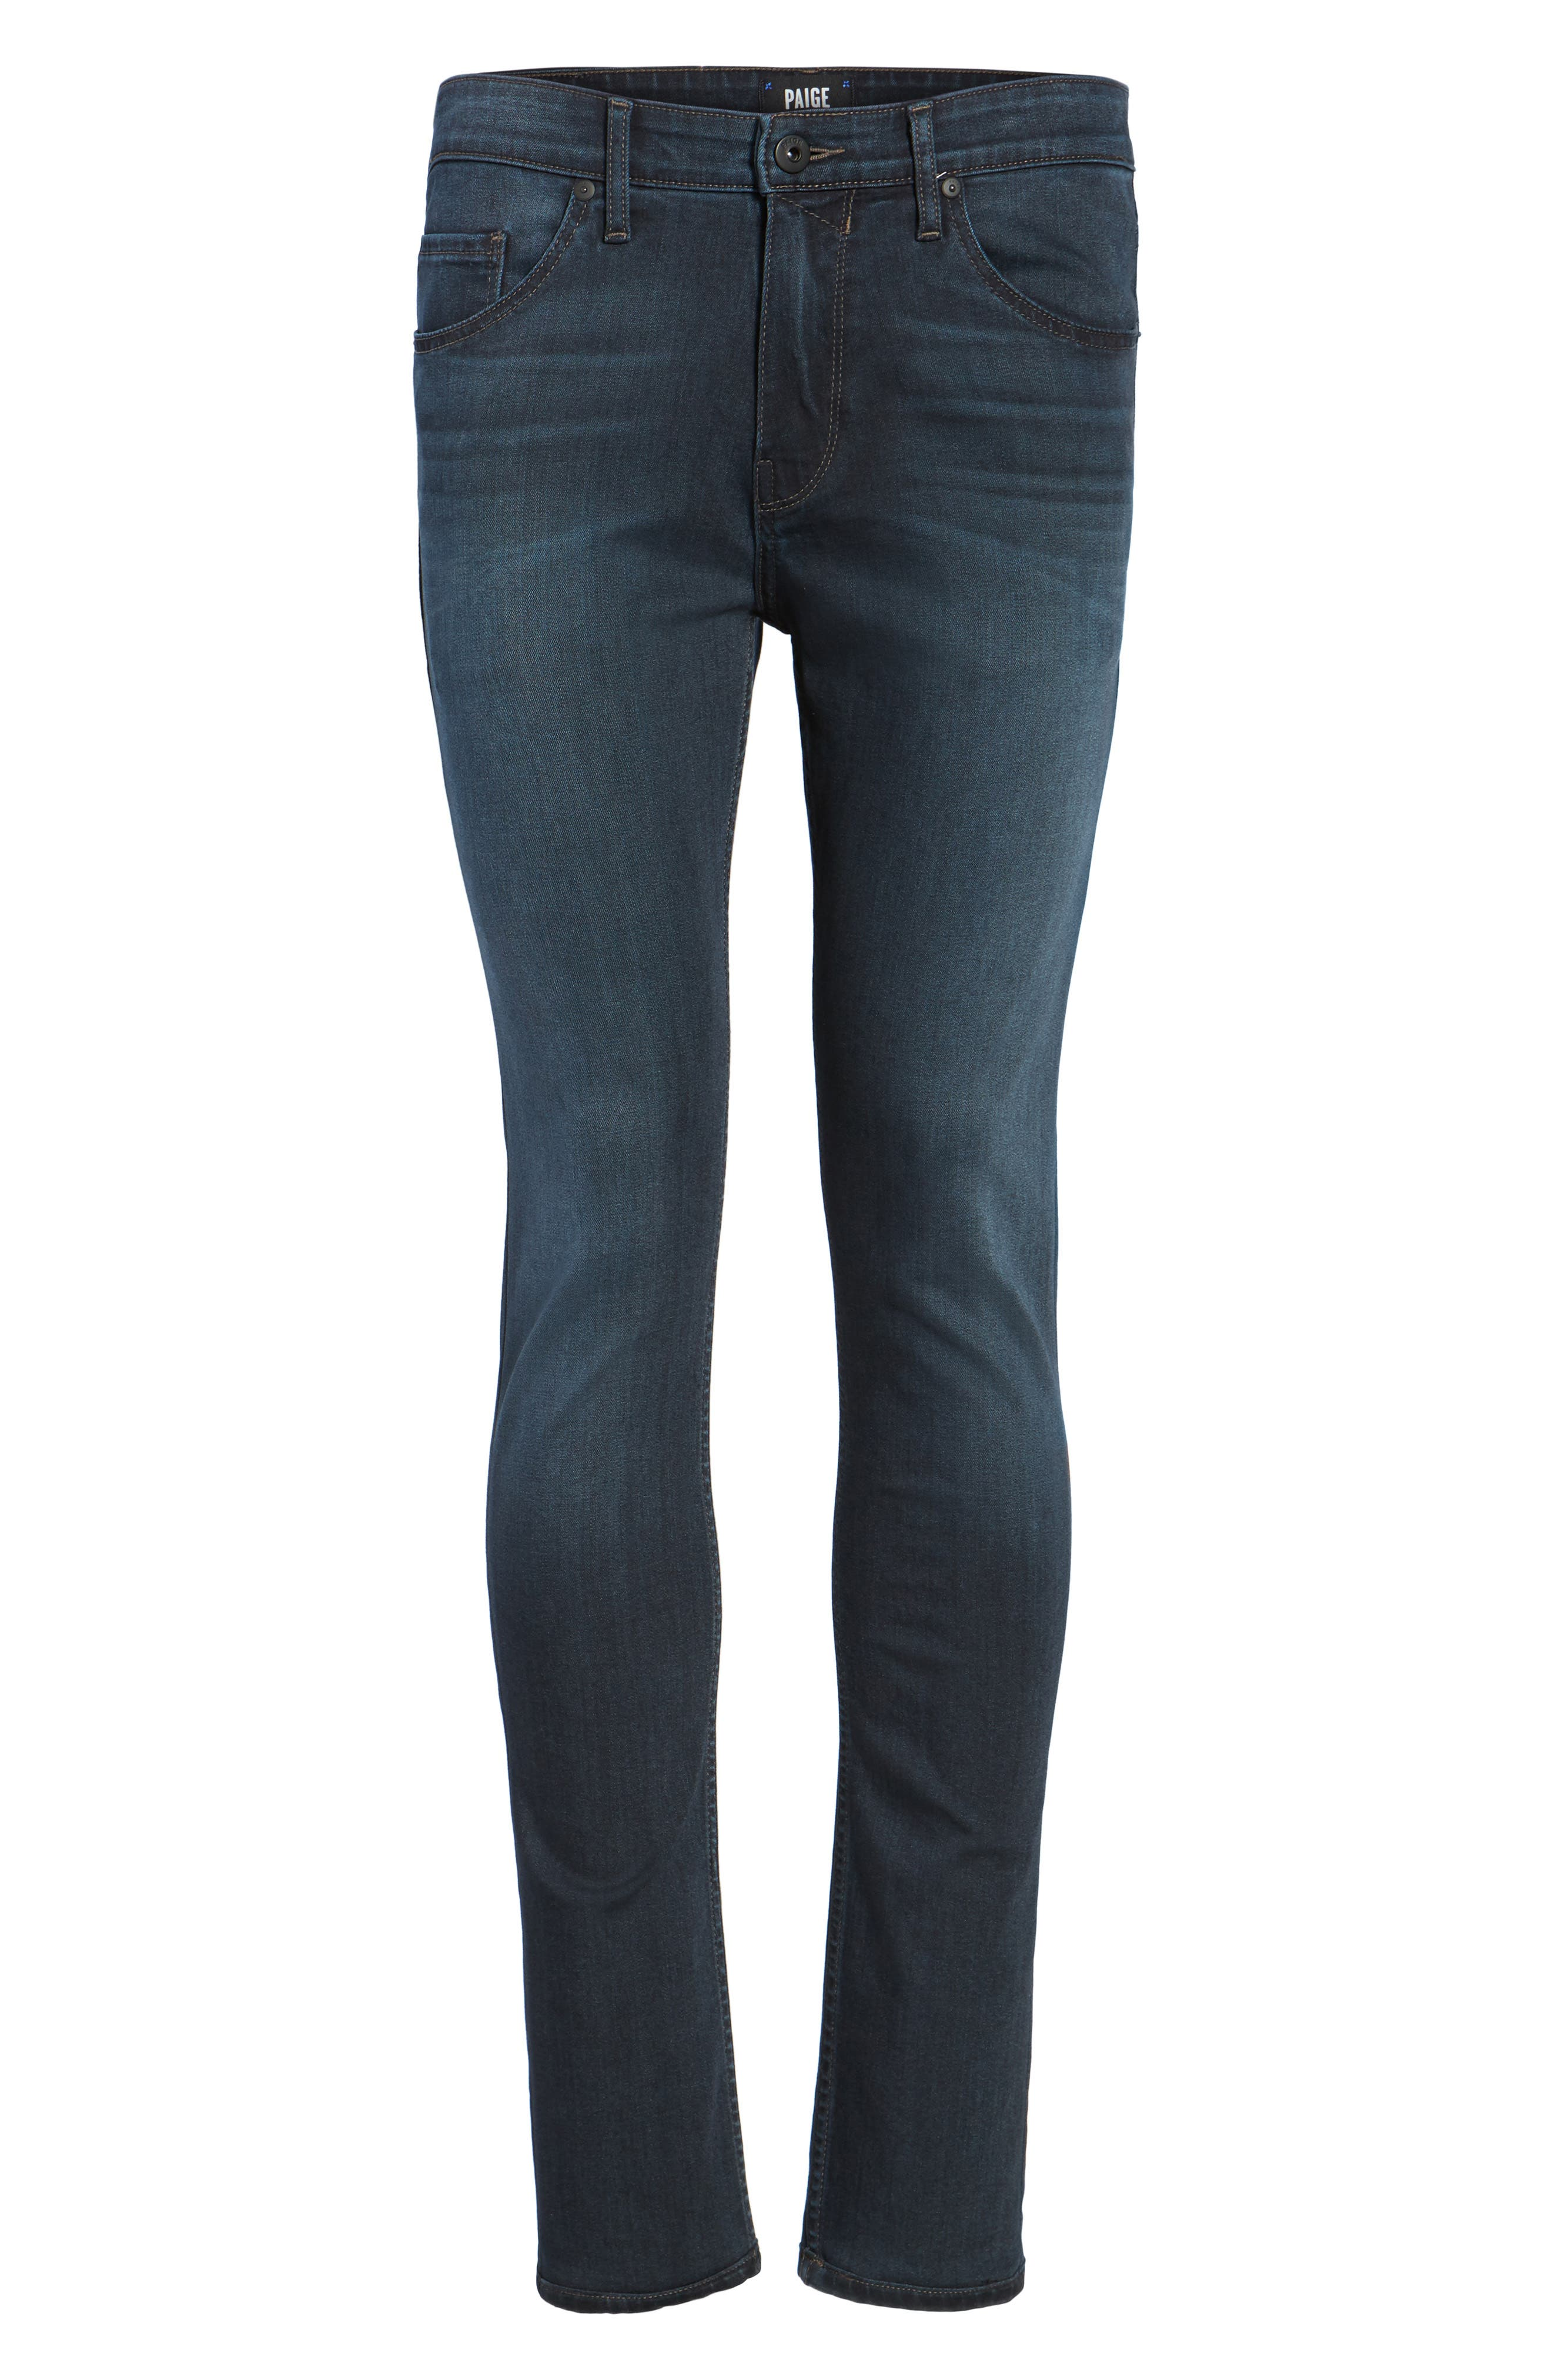 Croft Skinny Fit Jeans,                             Alternate thumbnail 6, color,                             Cecil